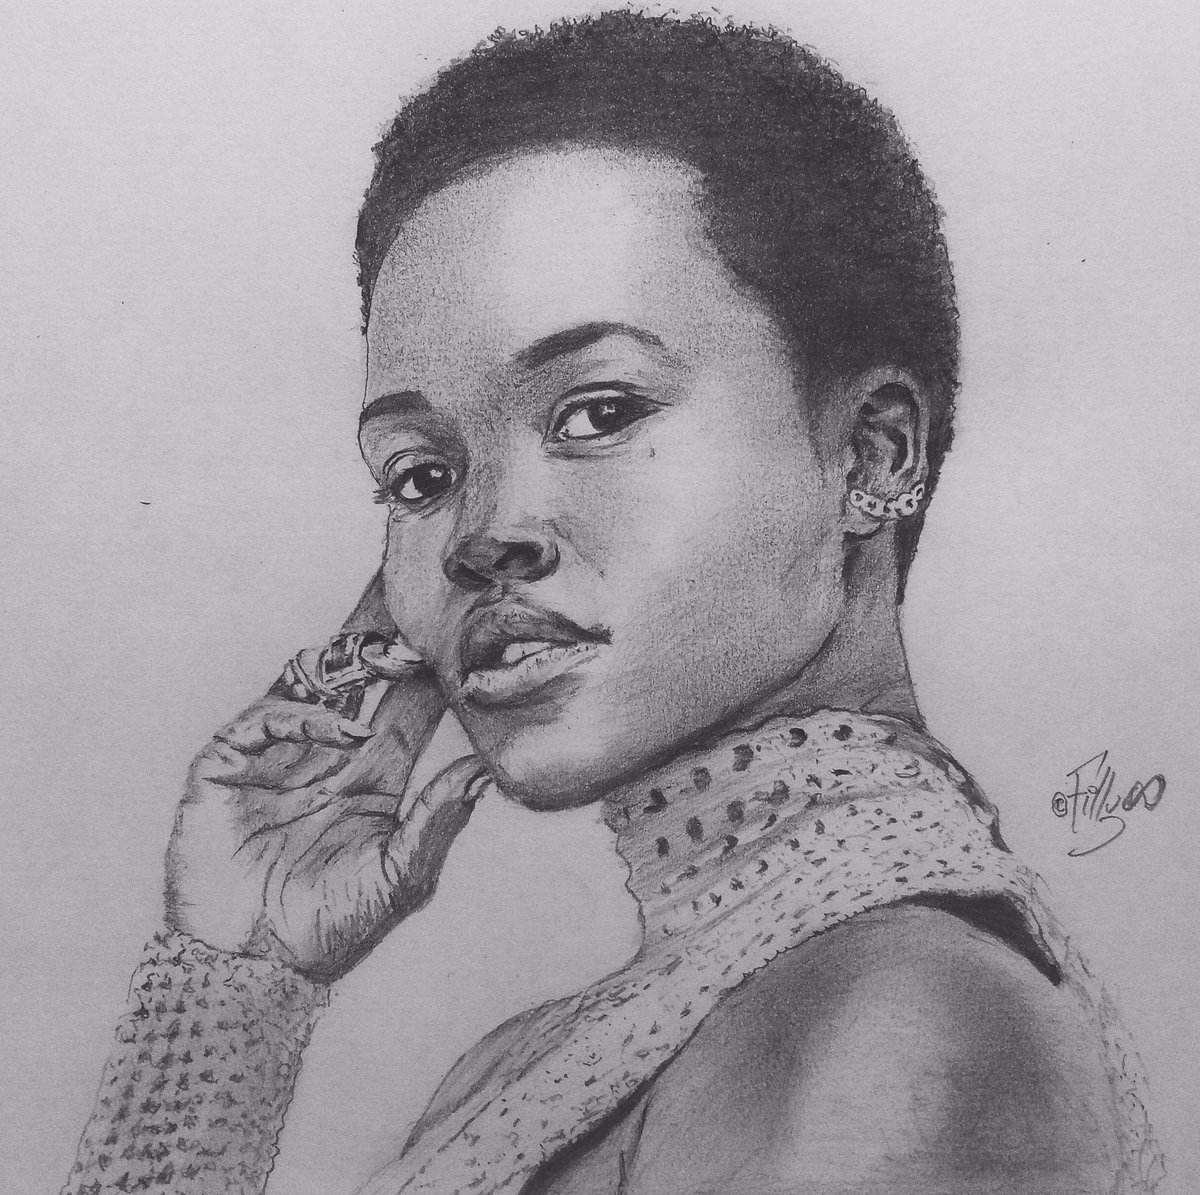 A simple RT would increase the chance of @Lupita_Nyongo to see this. #DrawnByInfinity #Drawing #Art<br>http://pic.twitter.com/N7vAZs9VjI